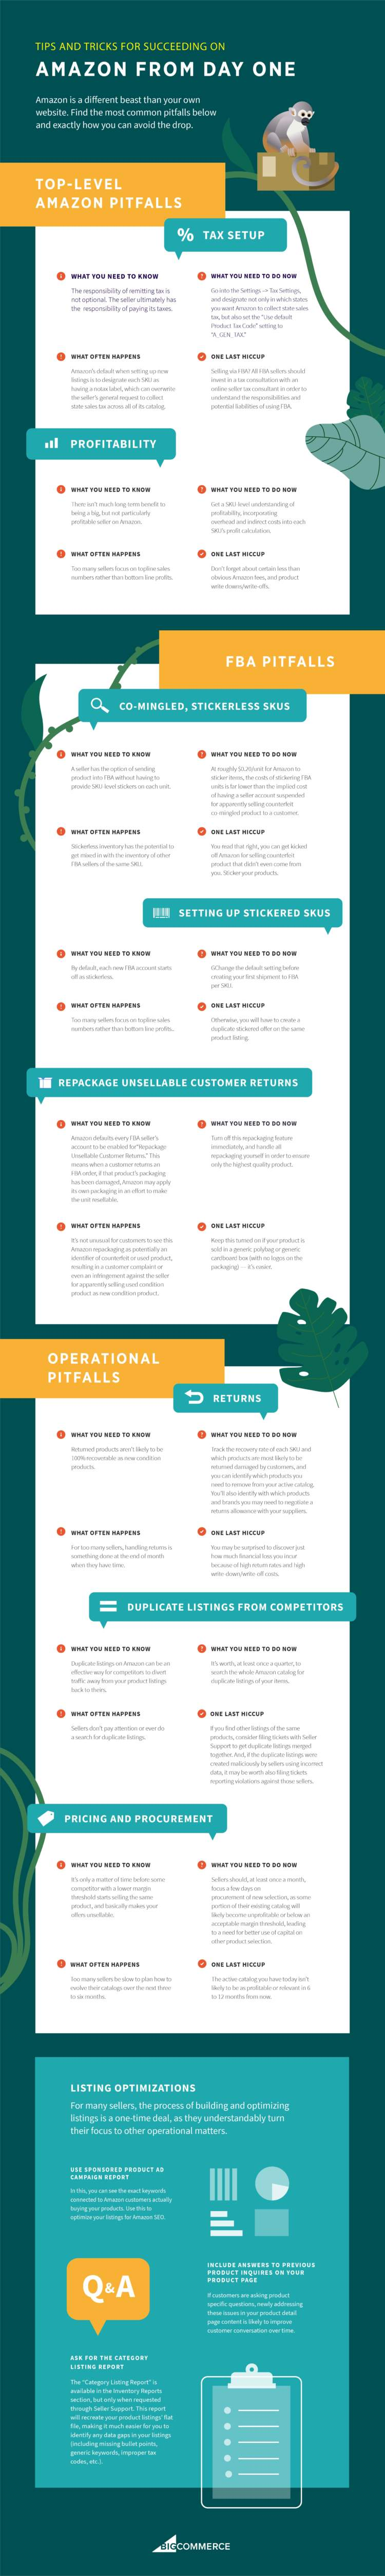 amazon selling pitfalls problems infographic